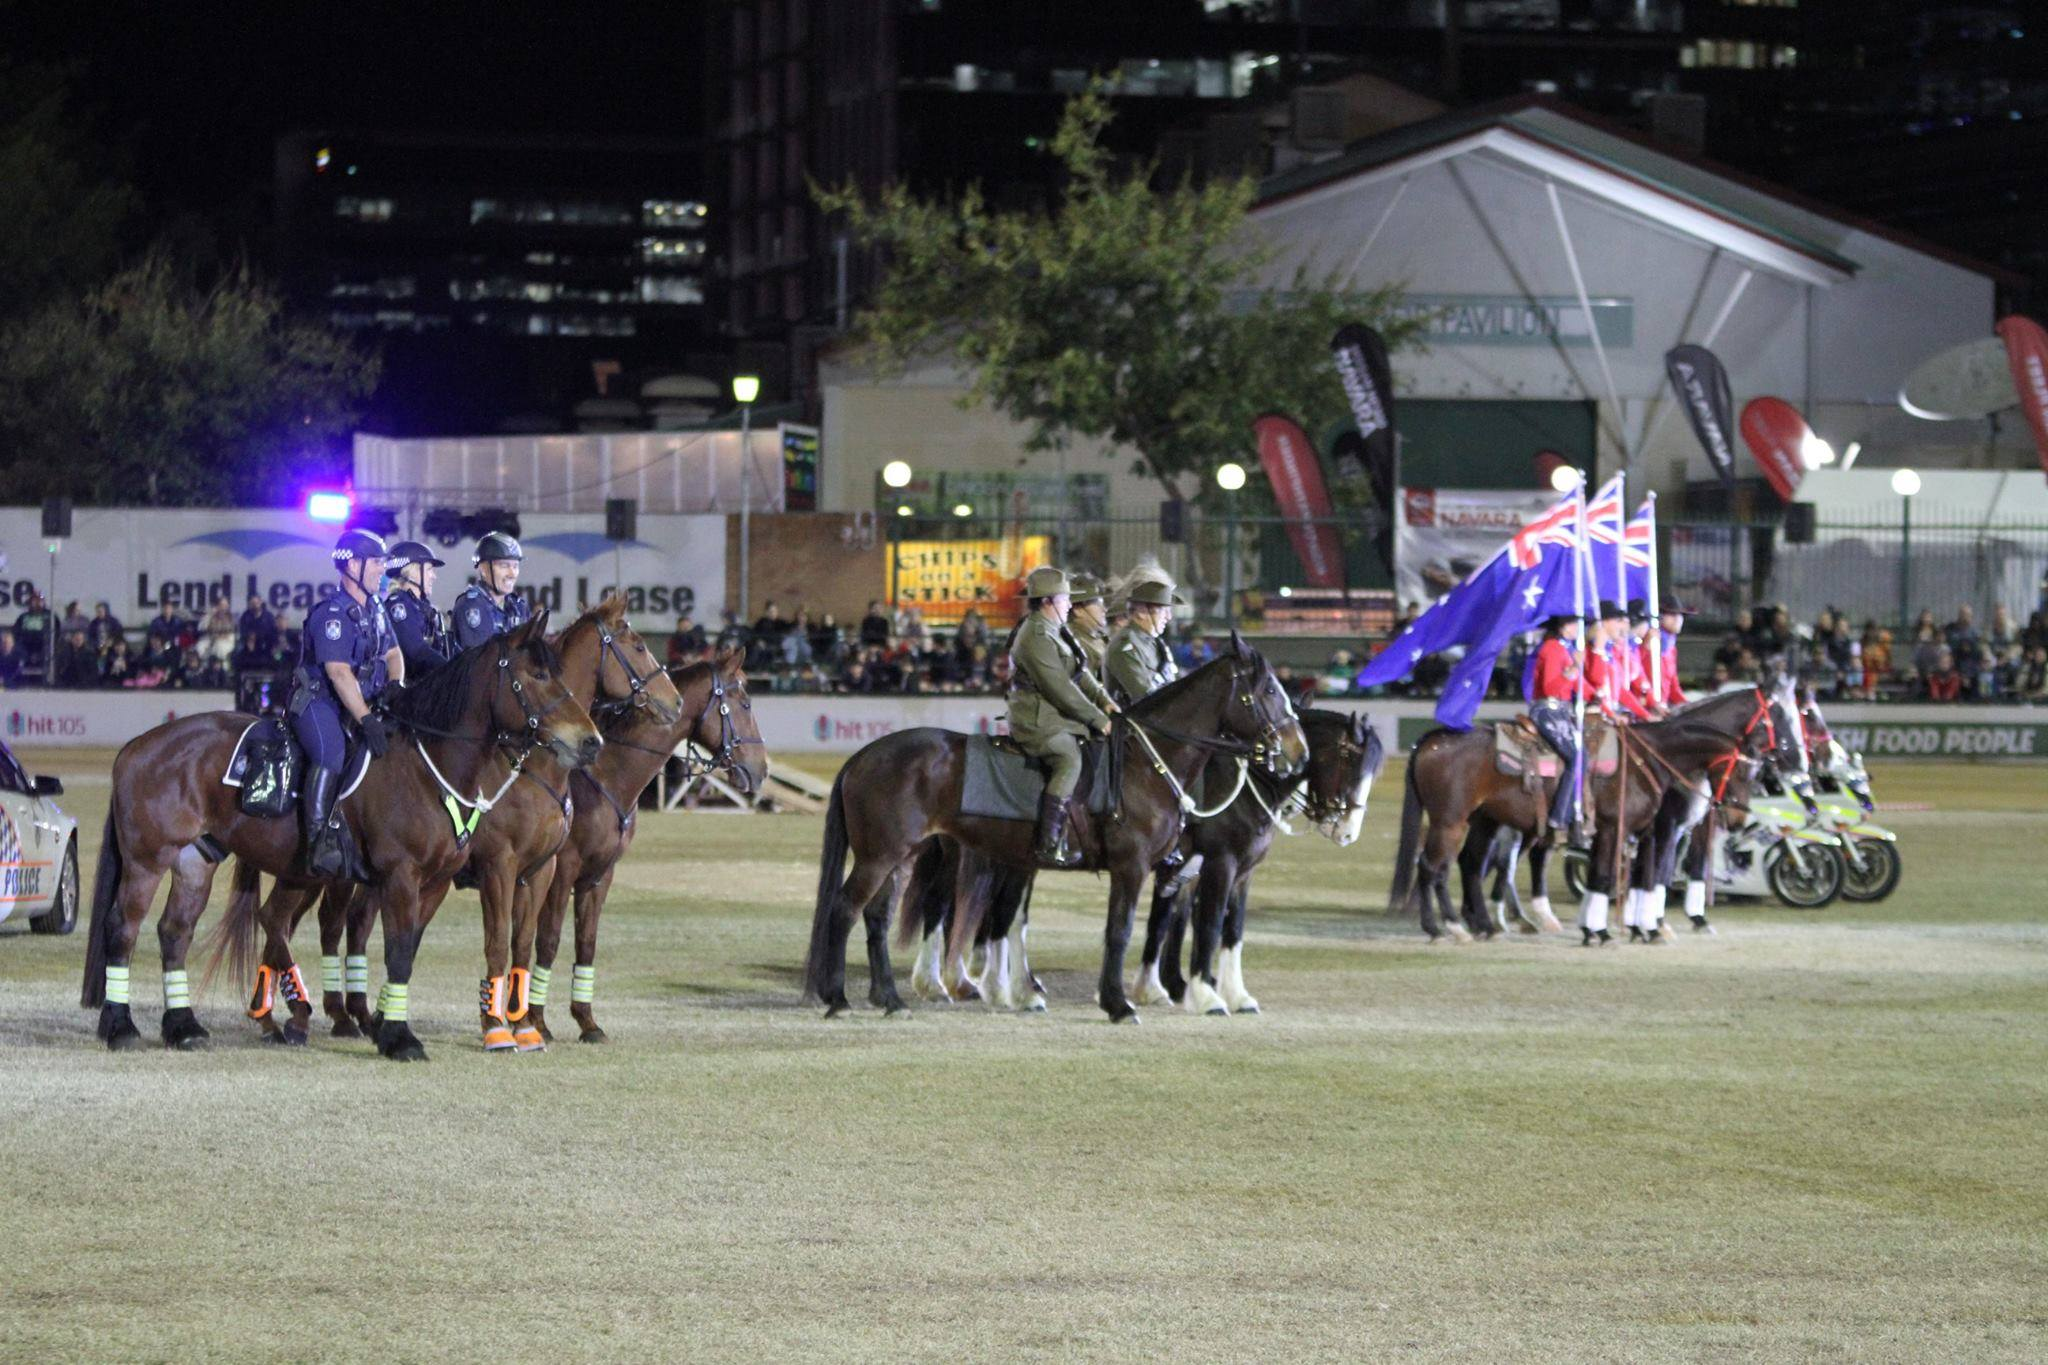 Walers in Light Horse EKKA 2015